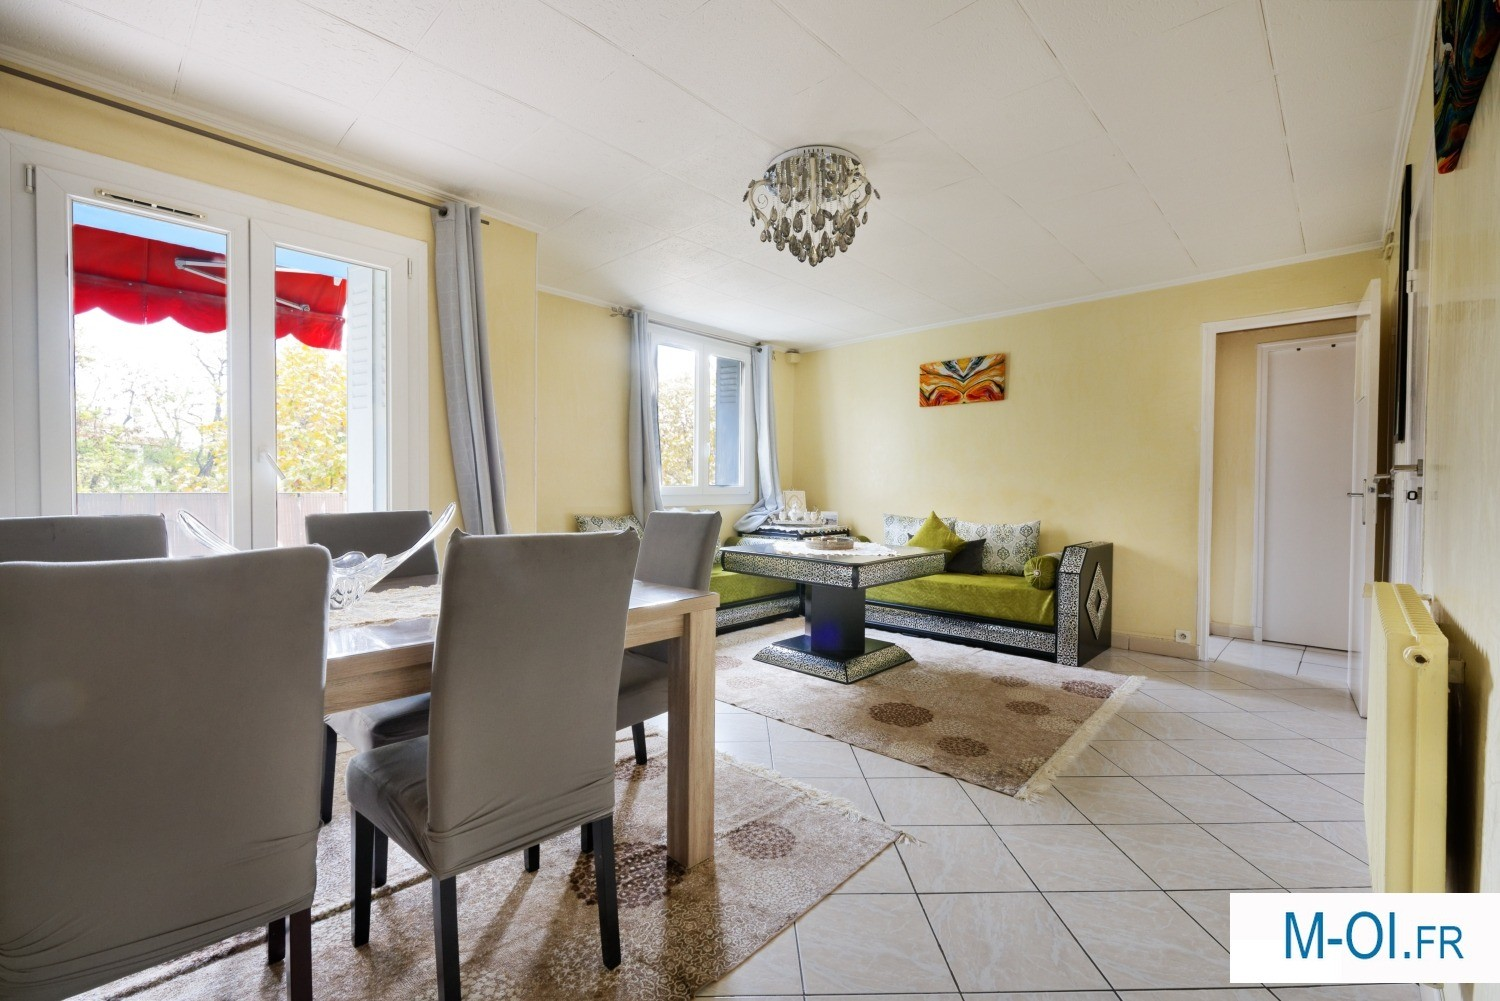 13015-marseille-vente-appartement-4-pieces_9.jpg